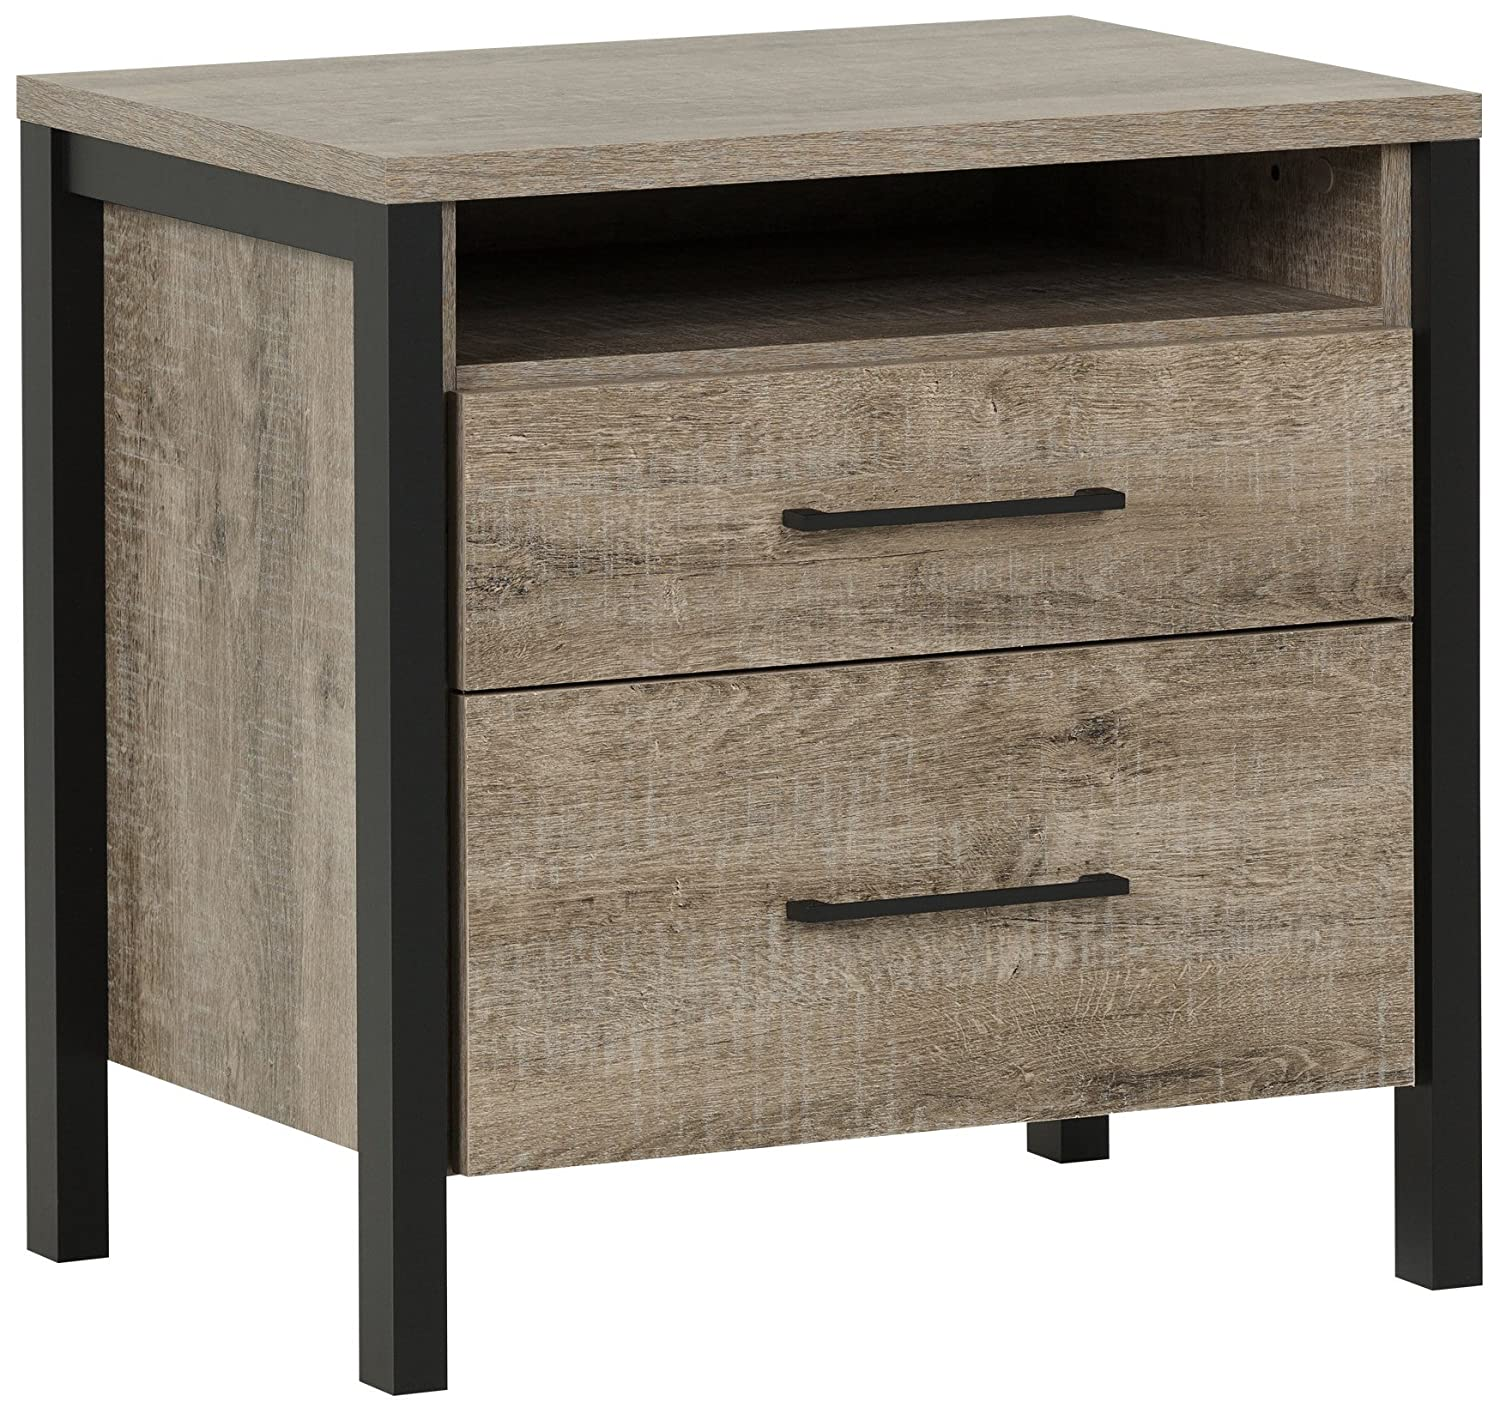 South Shore Furniture Munich 2-Drawer Nightstand, Weathered Oak 10493